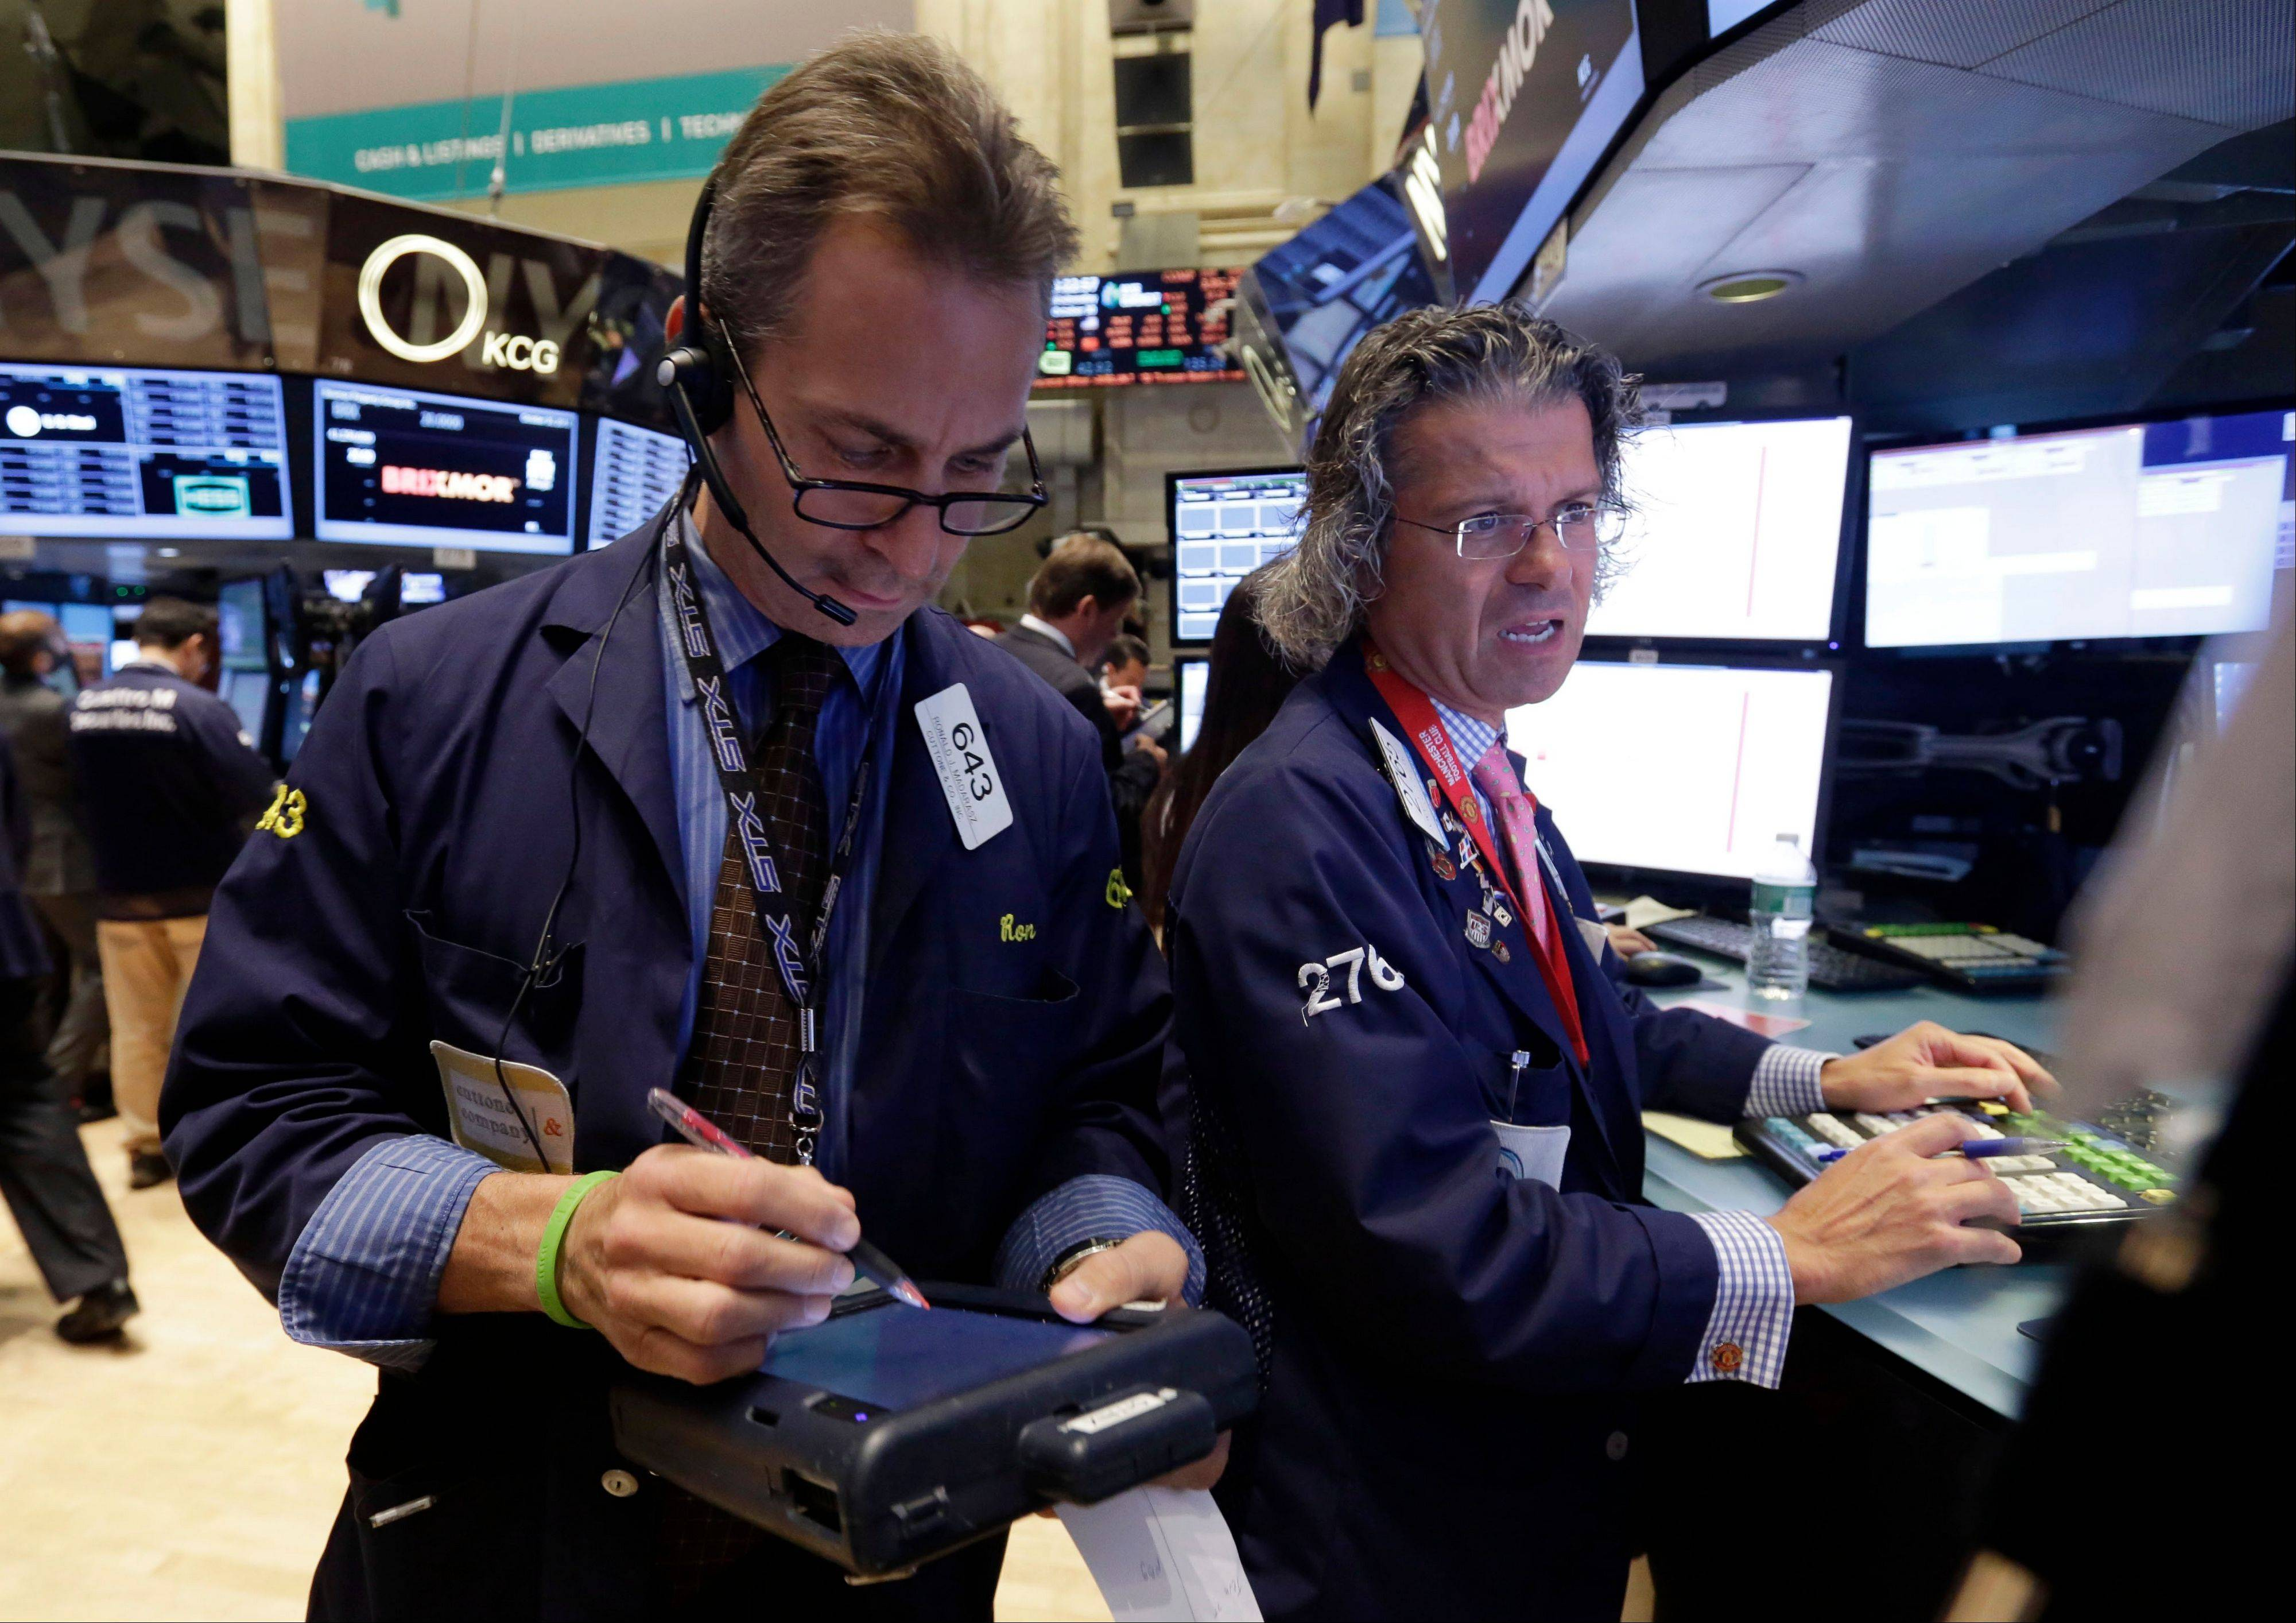 U.S. stocks advanced Wednesday, sending the Dow Jones Industrial Average to a record close, as Federal Reserve officials said economic weakness warrants continued stimulus and investors await data this week on jobs and growth.